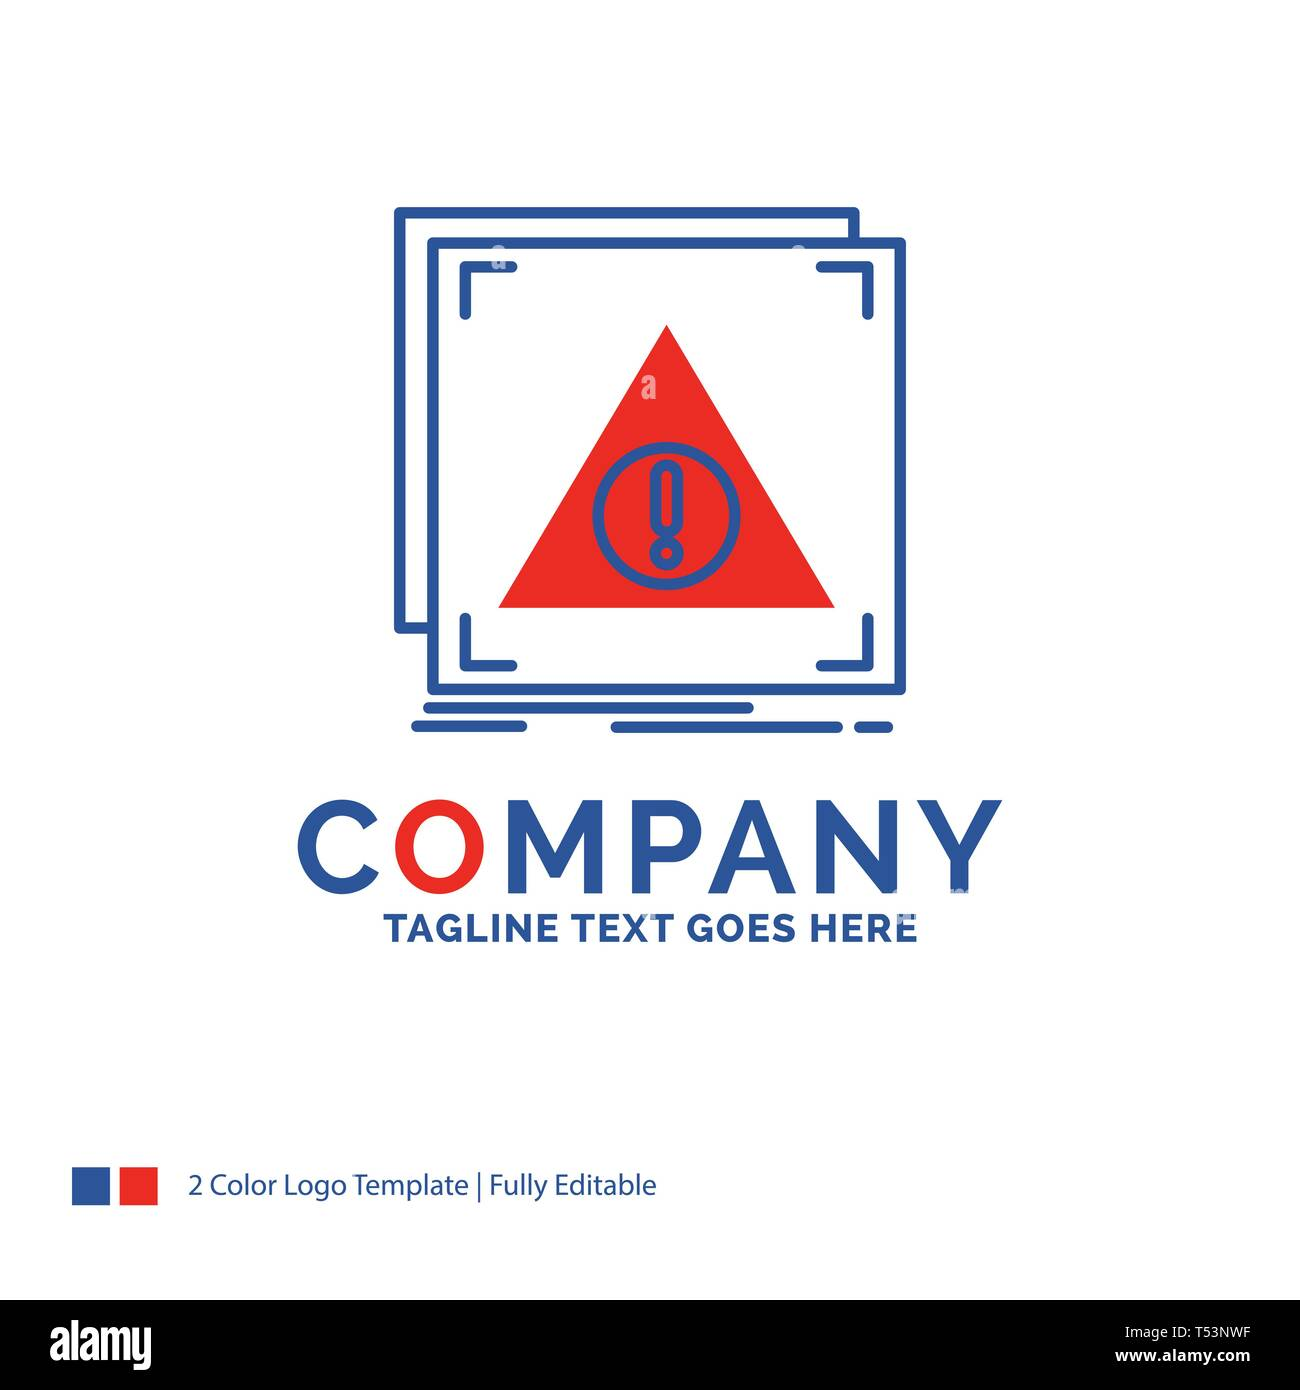 Company Name Logo Design For Error, Application, Denied, server, alert. Blue and red Brand Name Design with place for Tagline. Abstract Creative Logo  - Stock Image